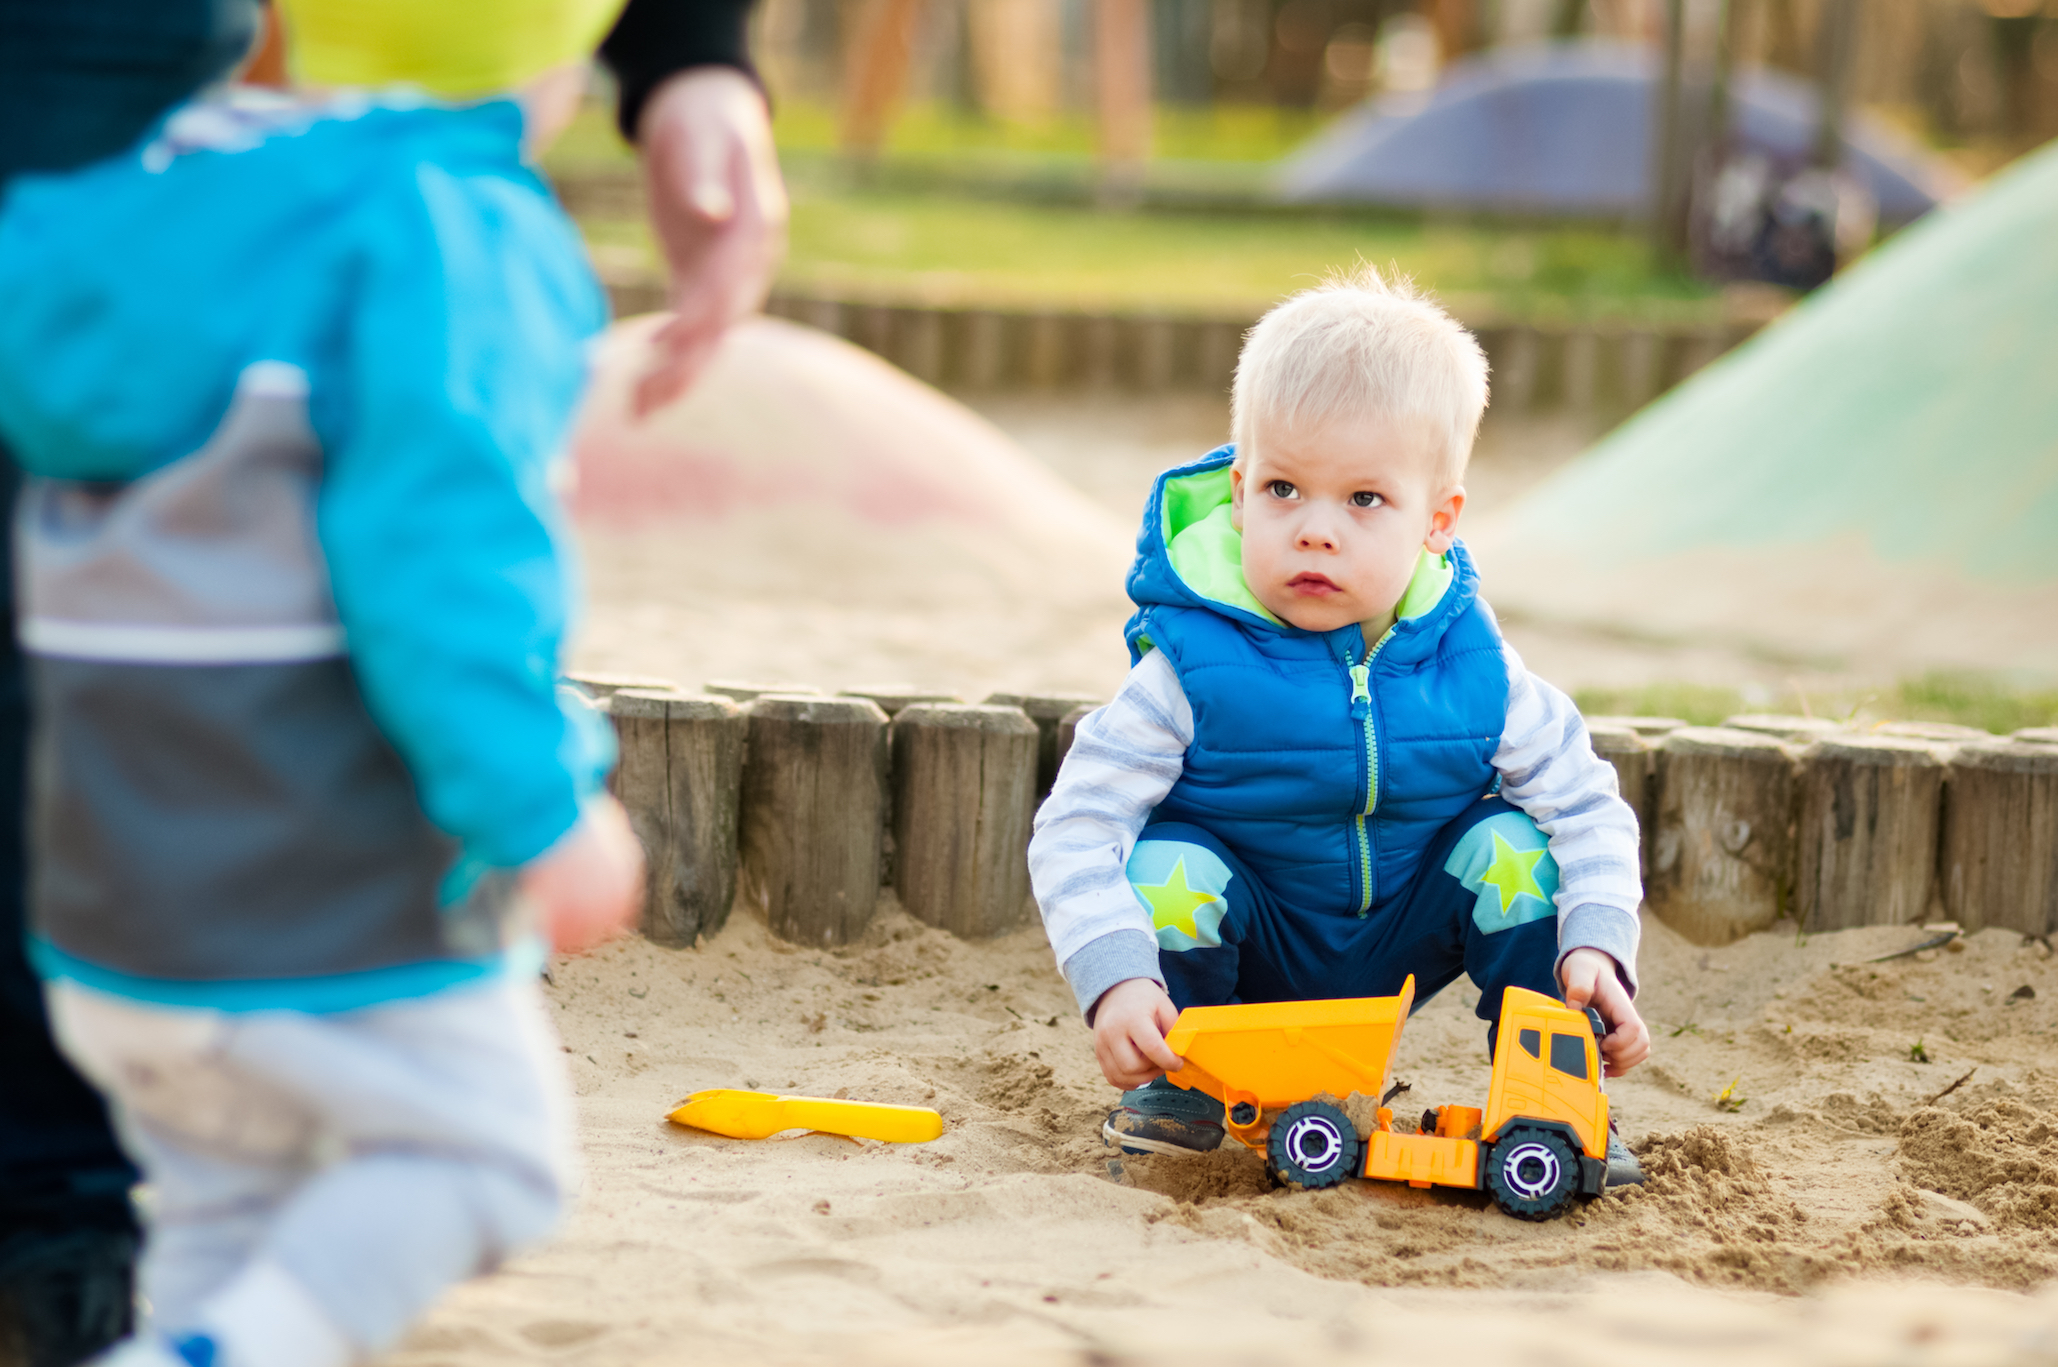 Researchers have made an alarming discovery of an anaerobic bacteria living in sandboxes in the city of Madrid.